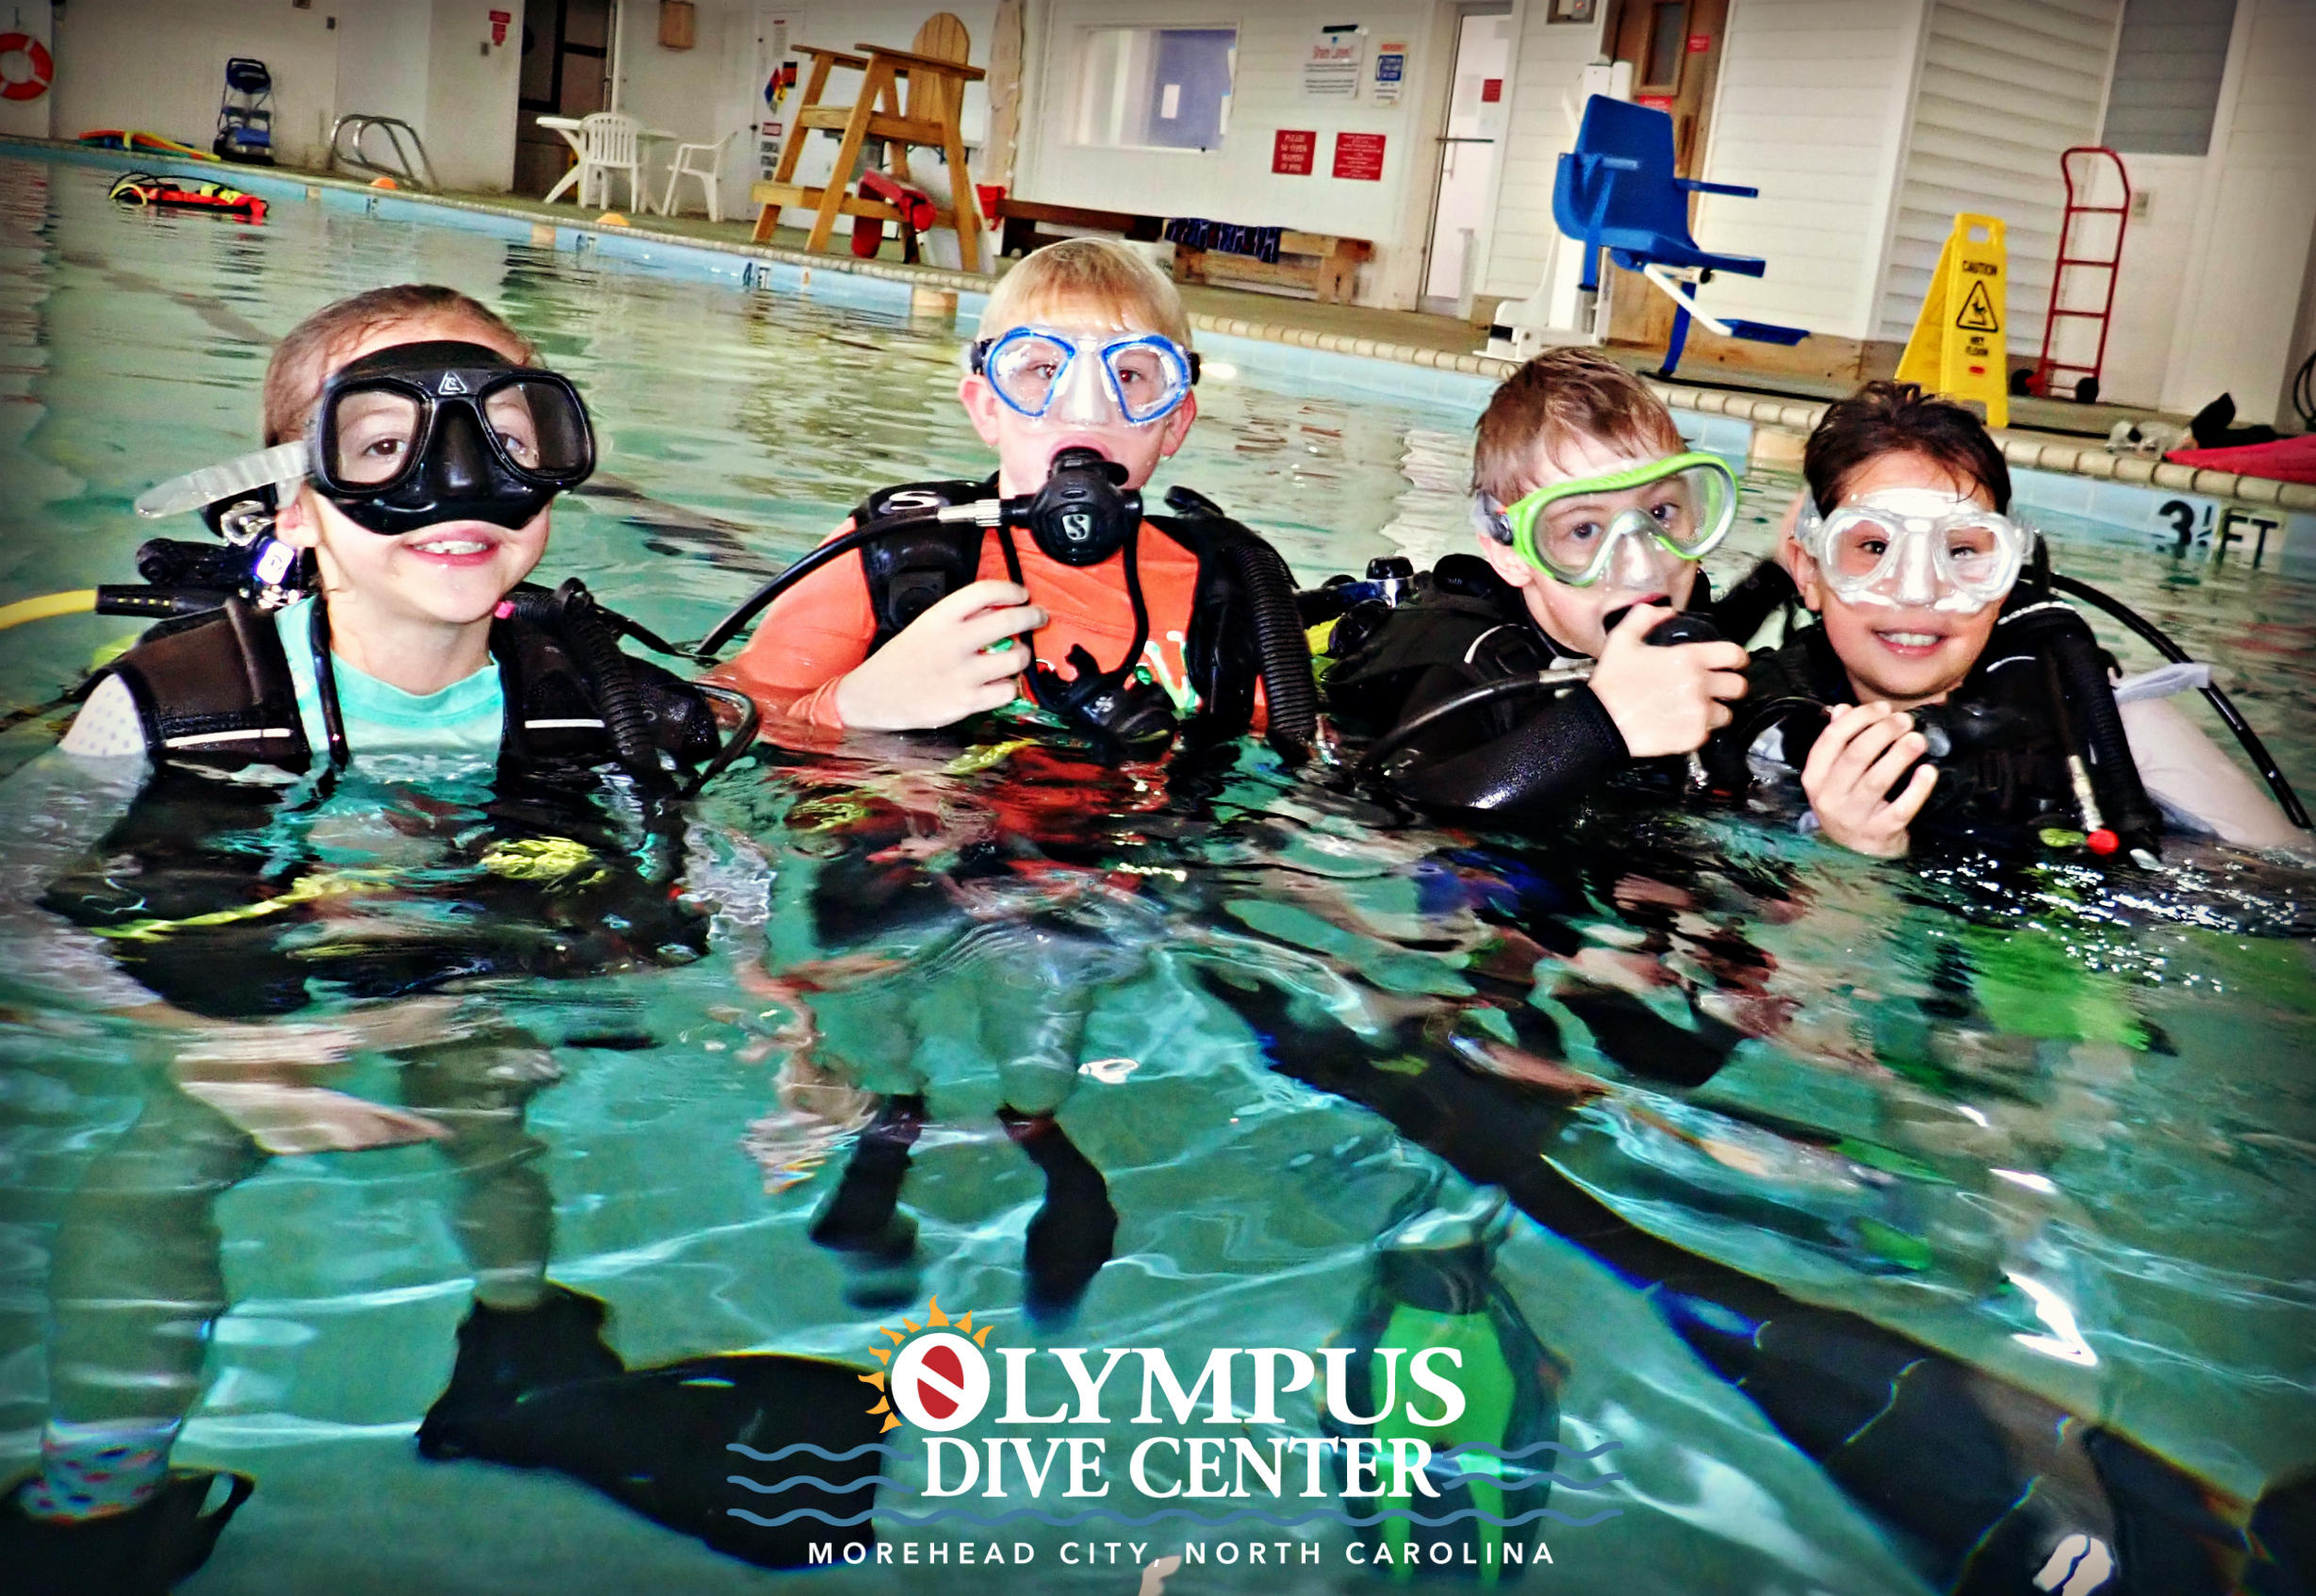 It's A Family Affair At Olympus Dive Center